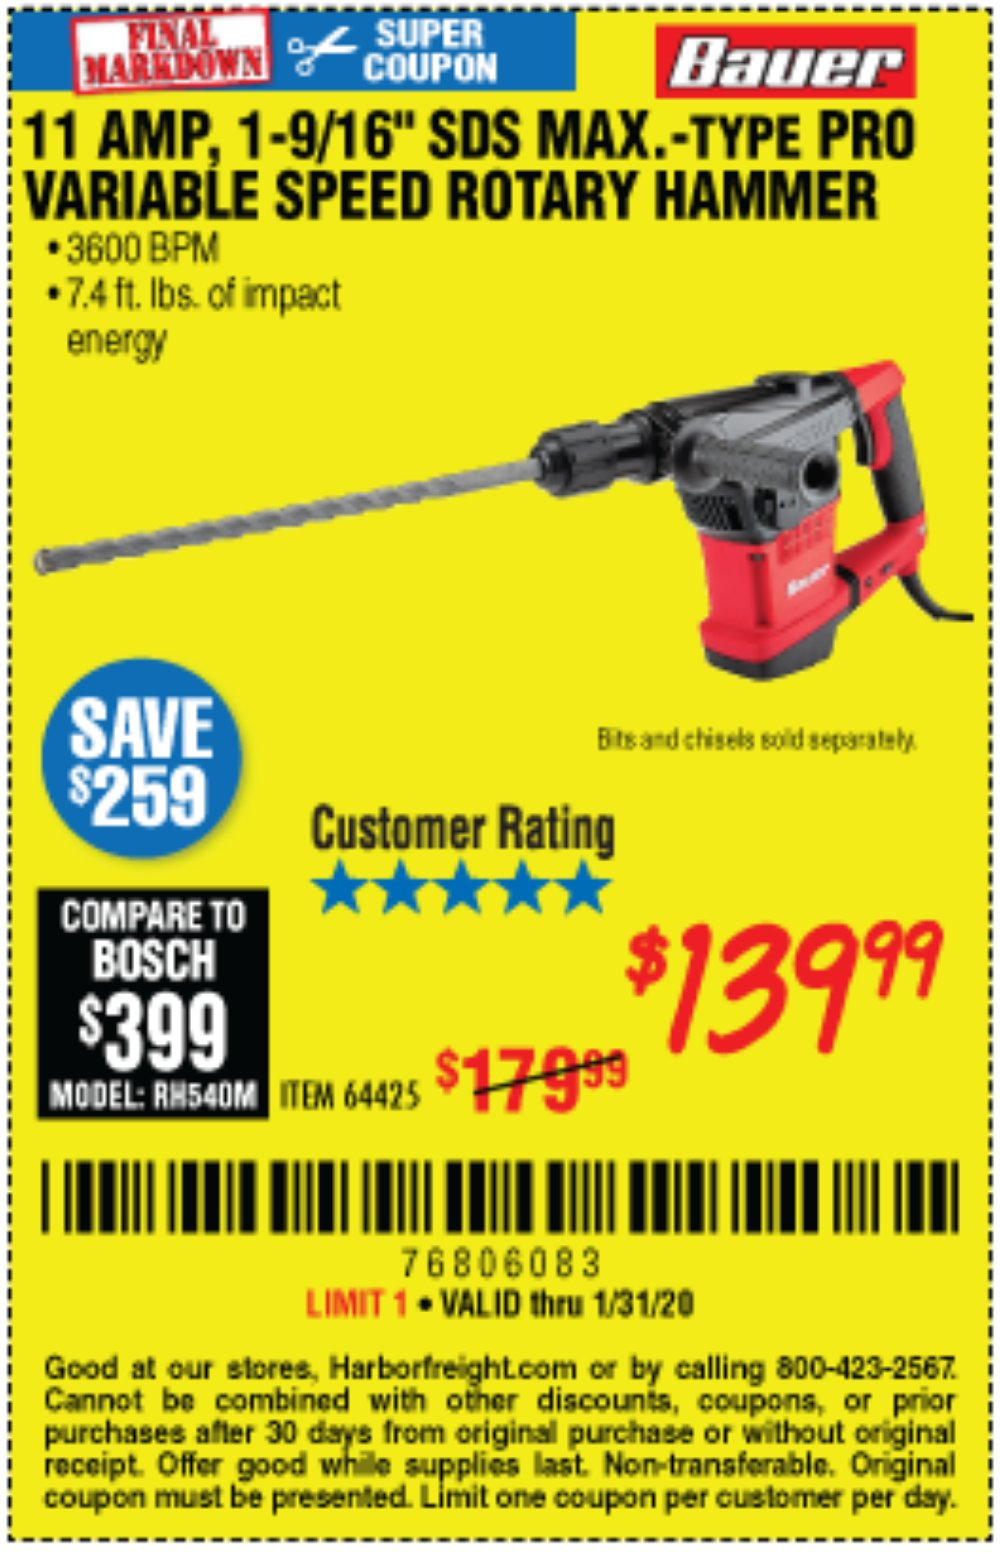 Harbor Freight Coupon, HF Coupons - 11 Amp, 1-9/16